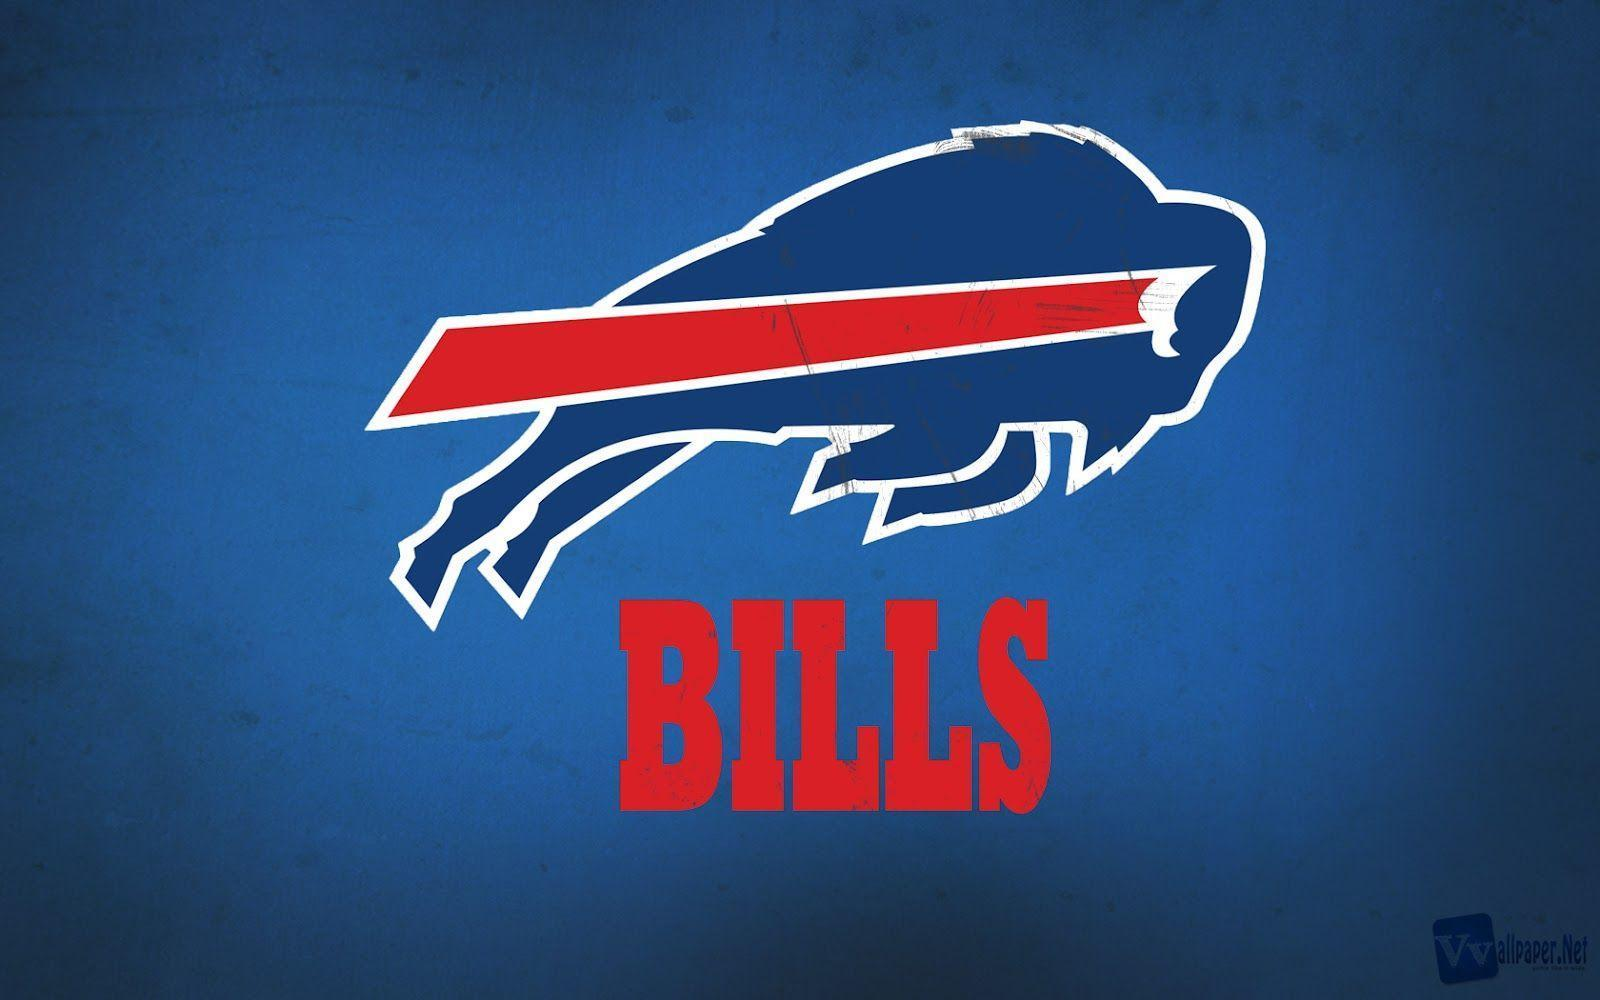 Buffalo bills logo and helmet hd wallpapers desktop wallpapers